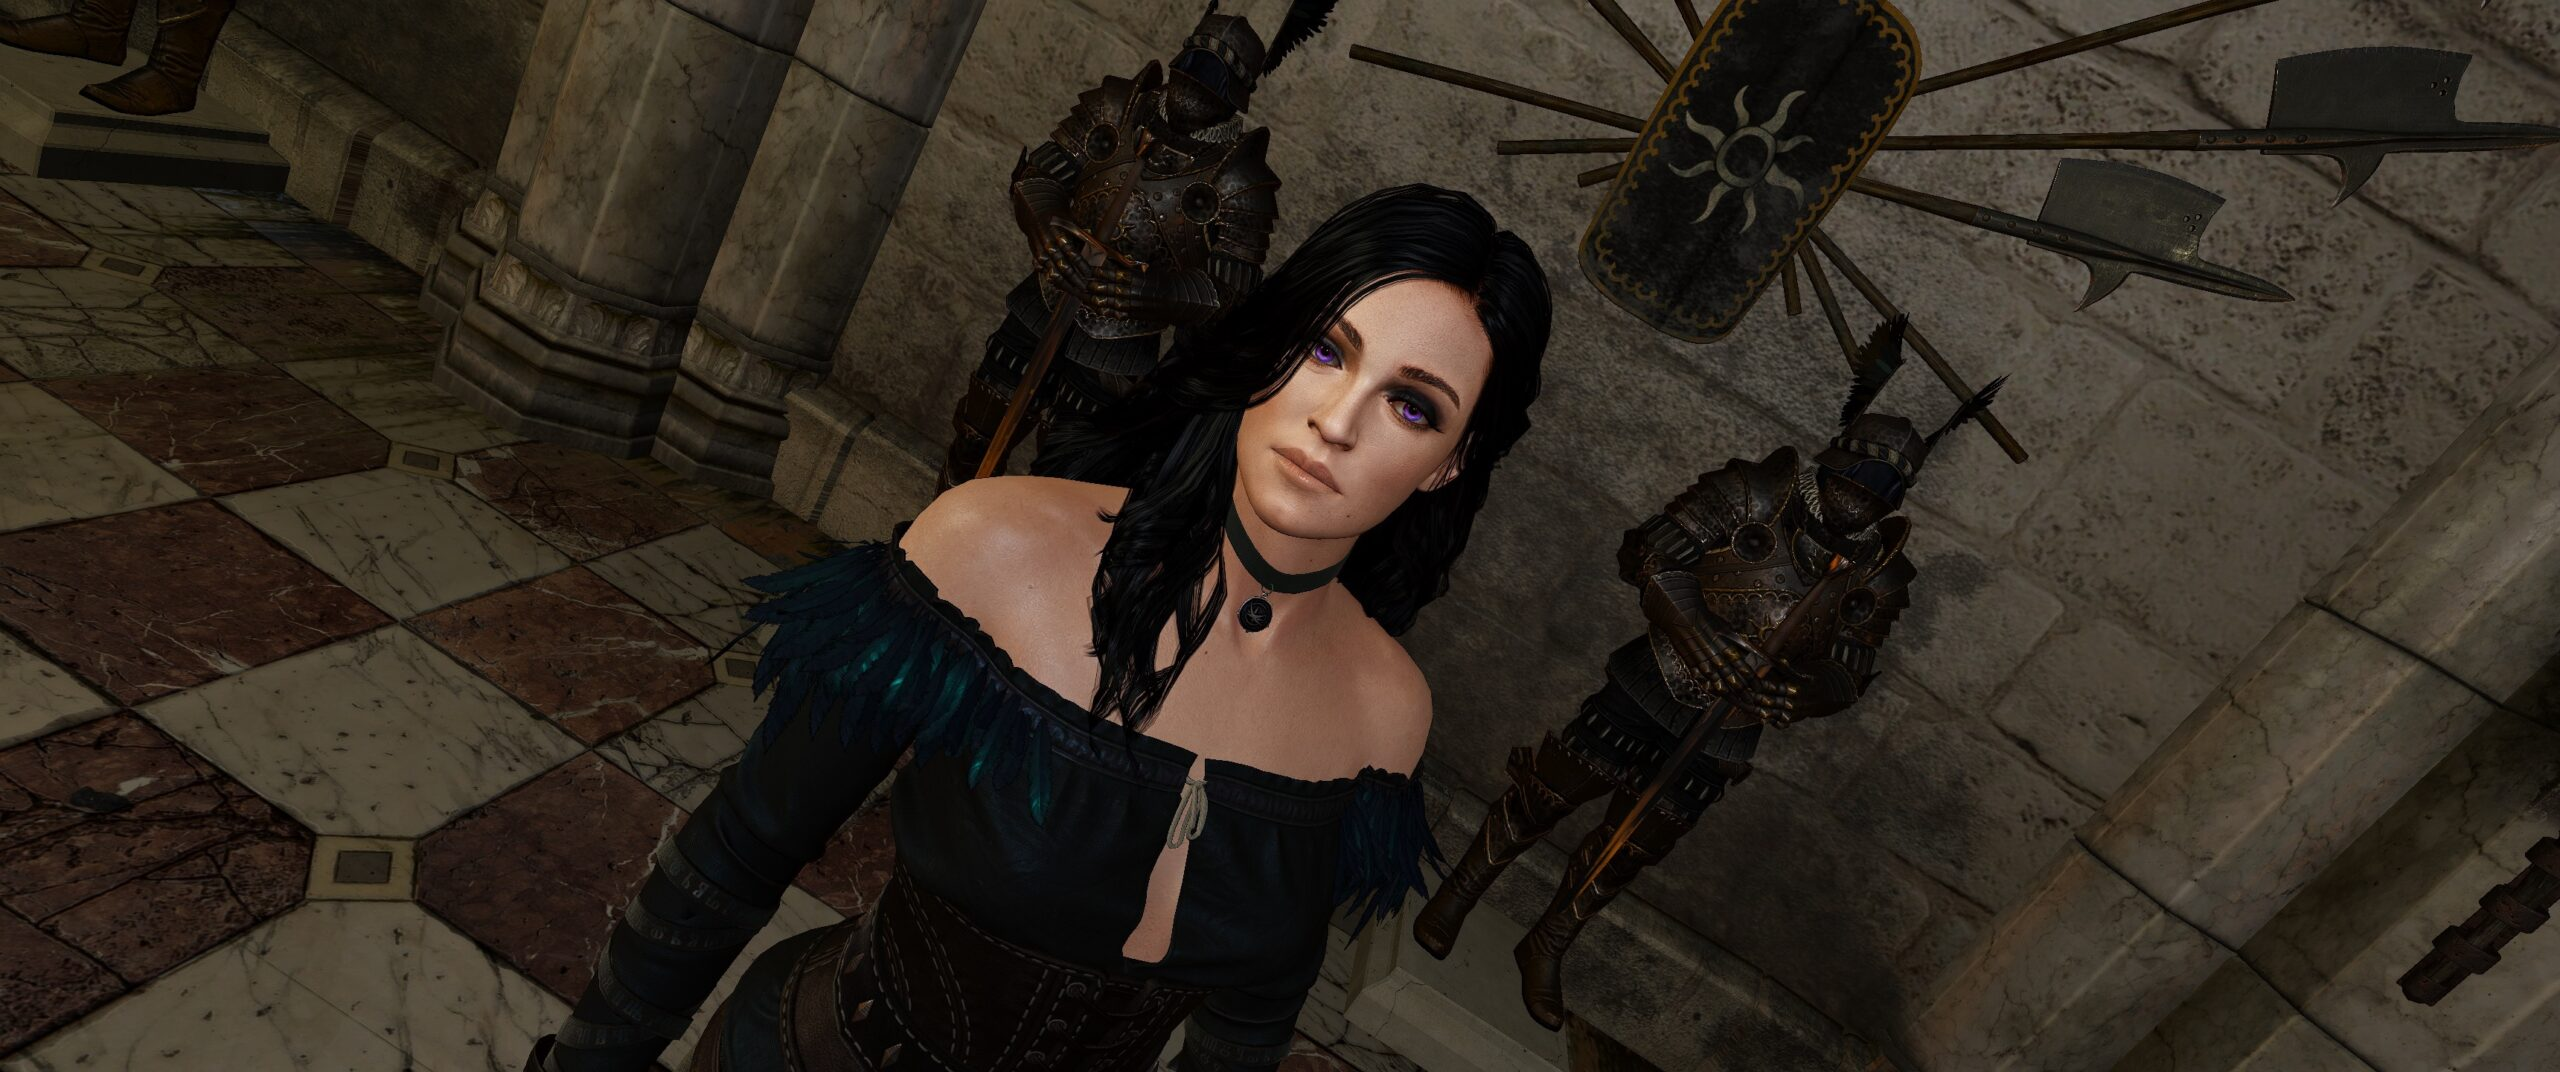 Play As Henry Cavill In The Witcher 3 With Anya Chalotra As